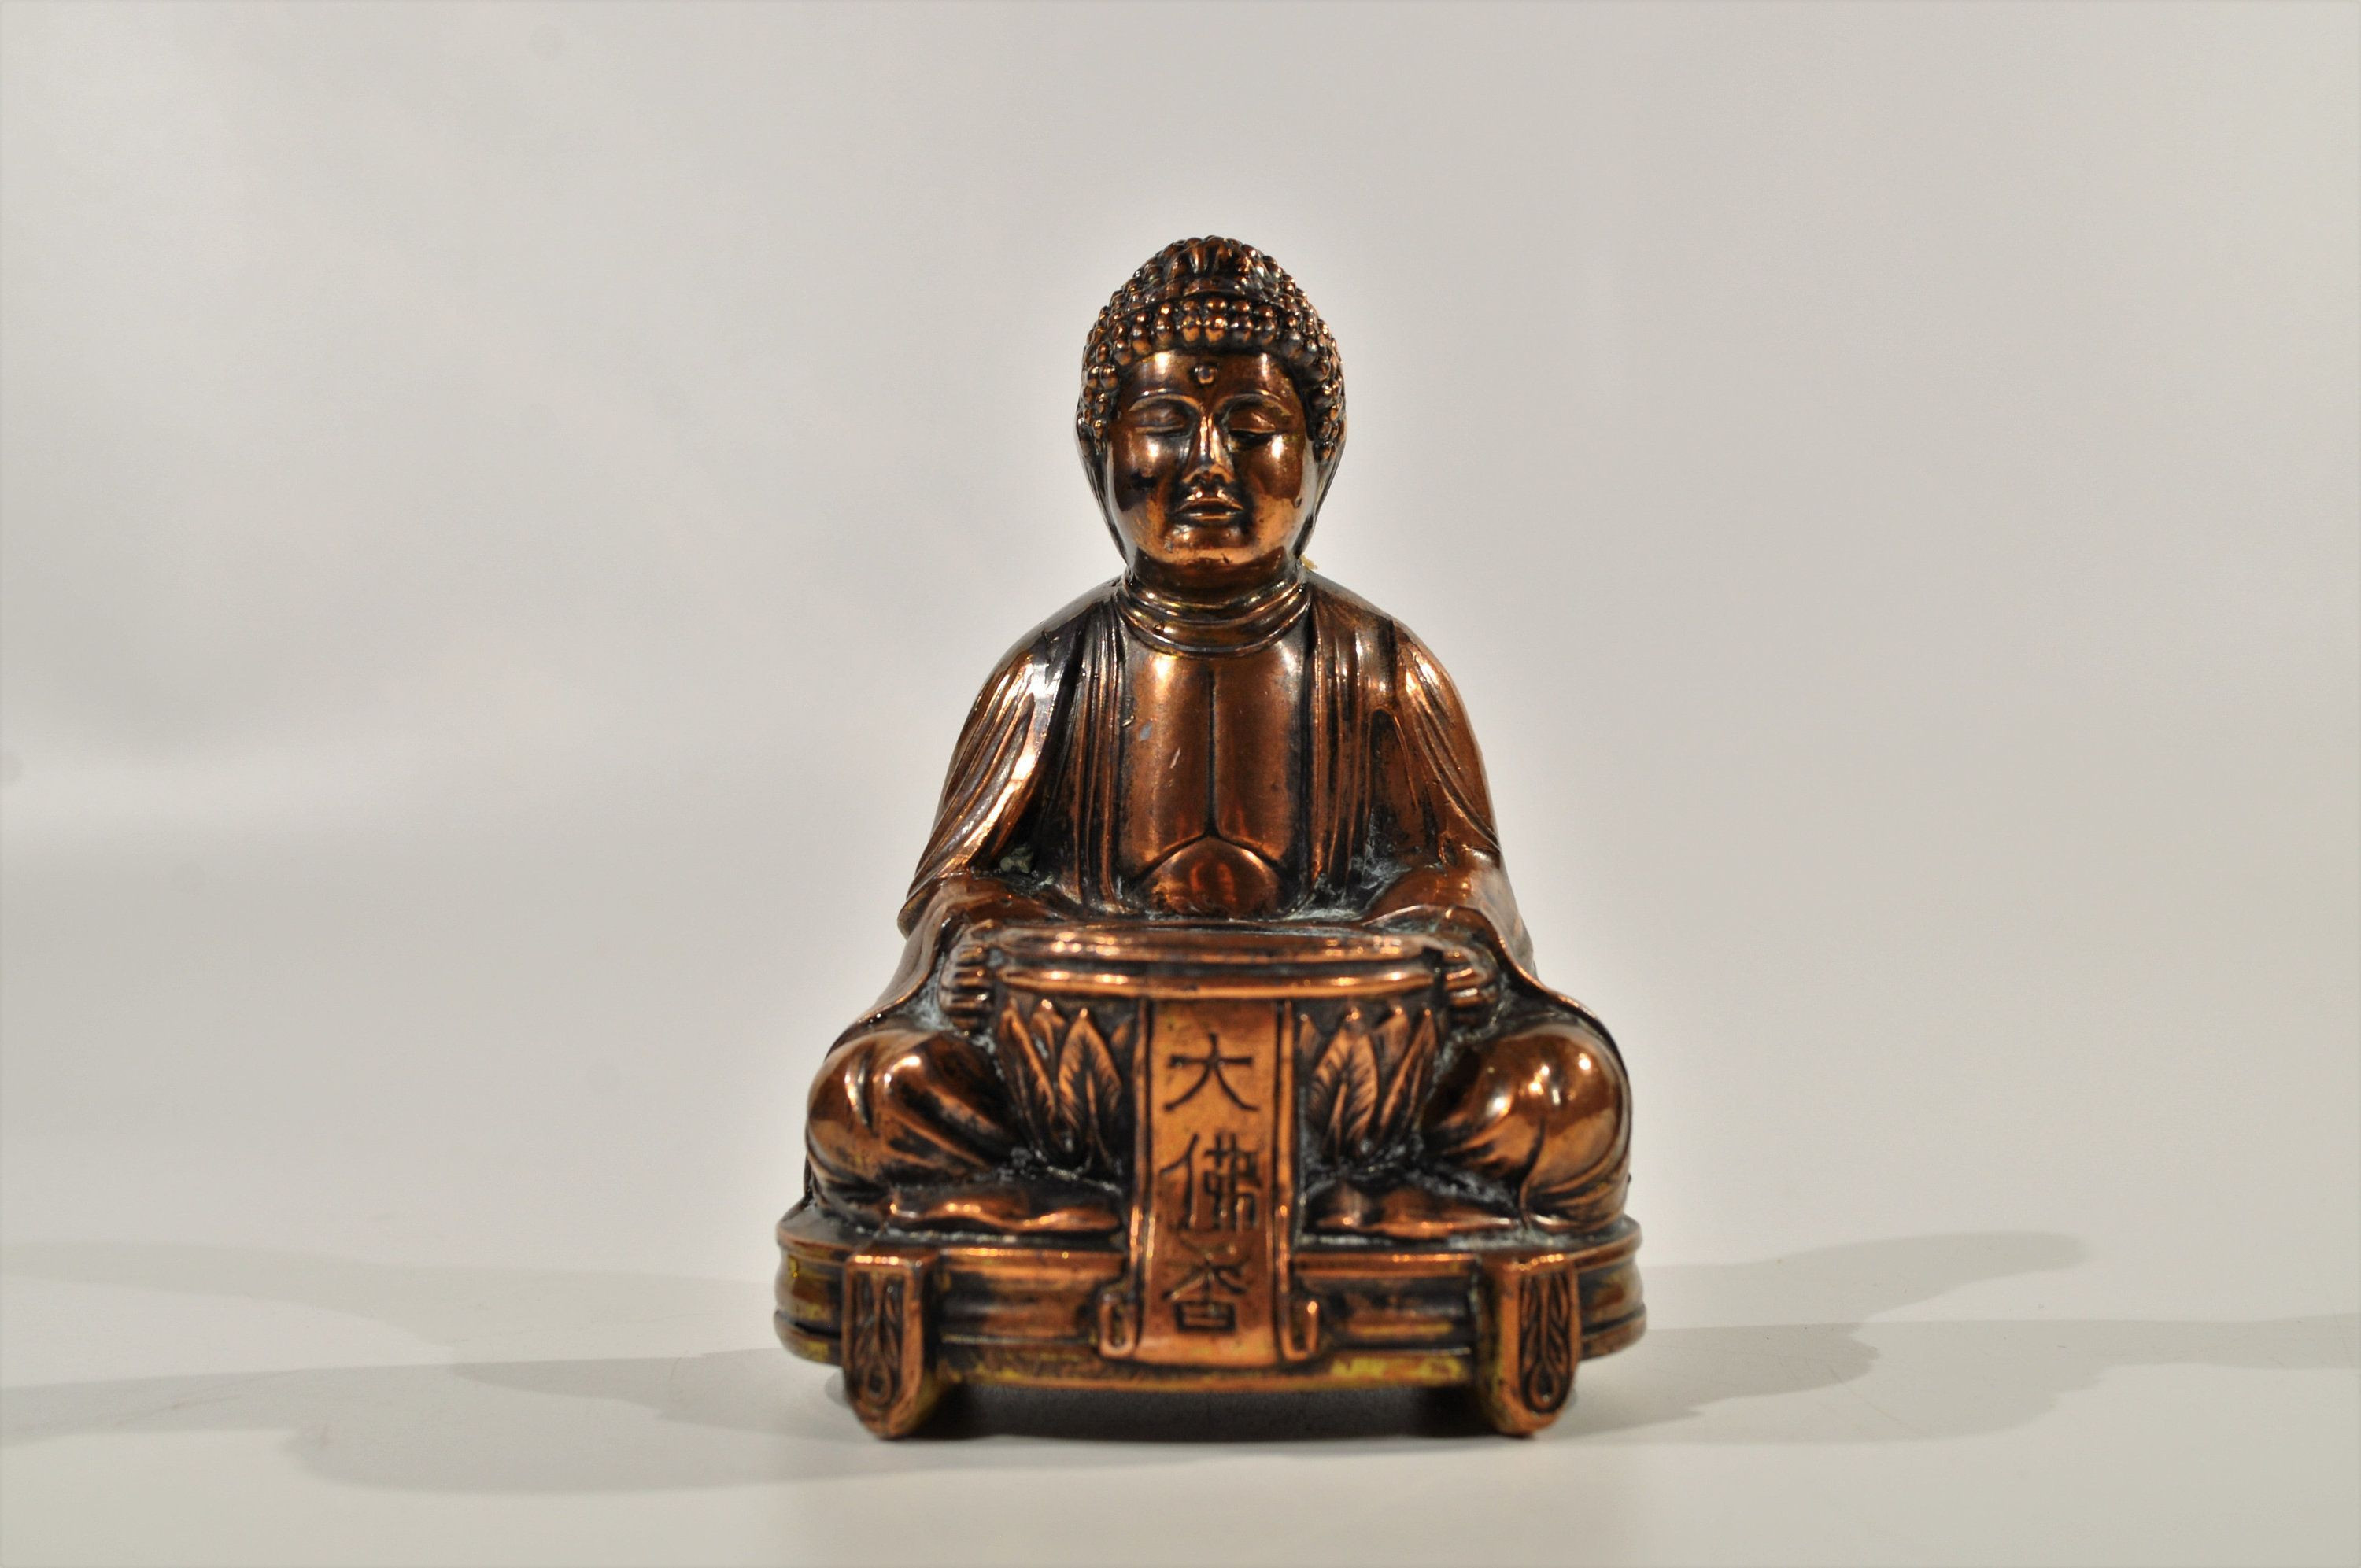 norleans vase made in italy of buddha statue made of copper pinterest pertaining to buddha statue made of copper